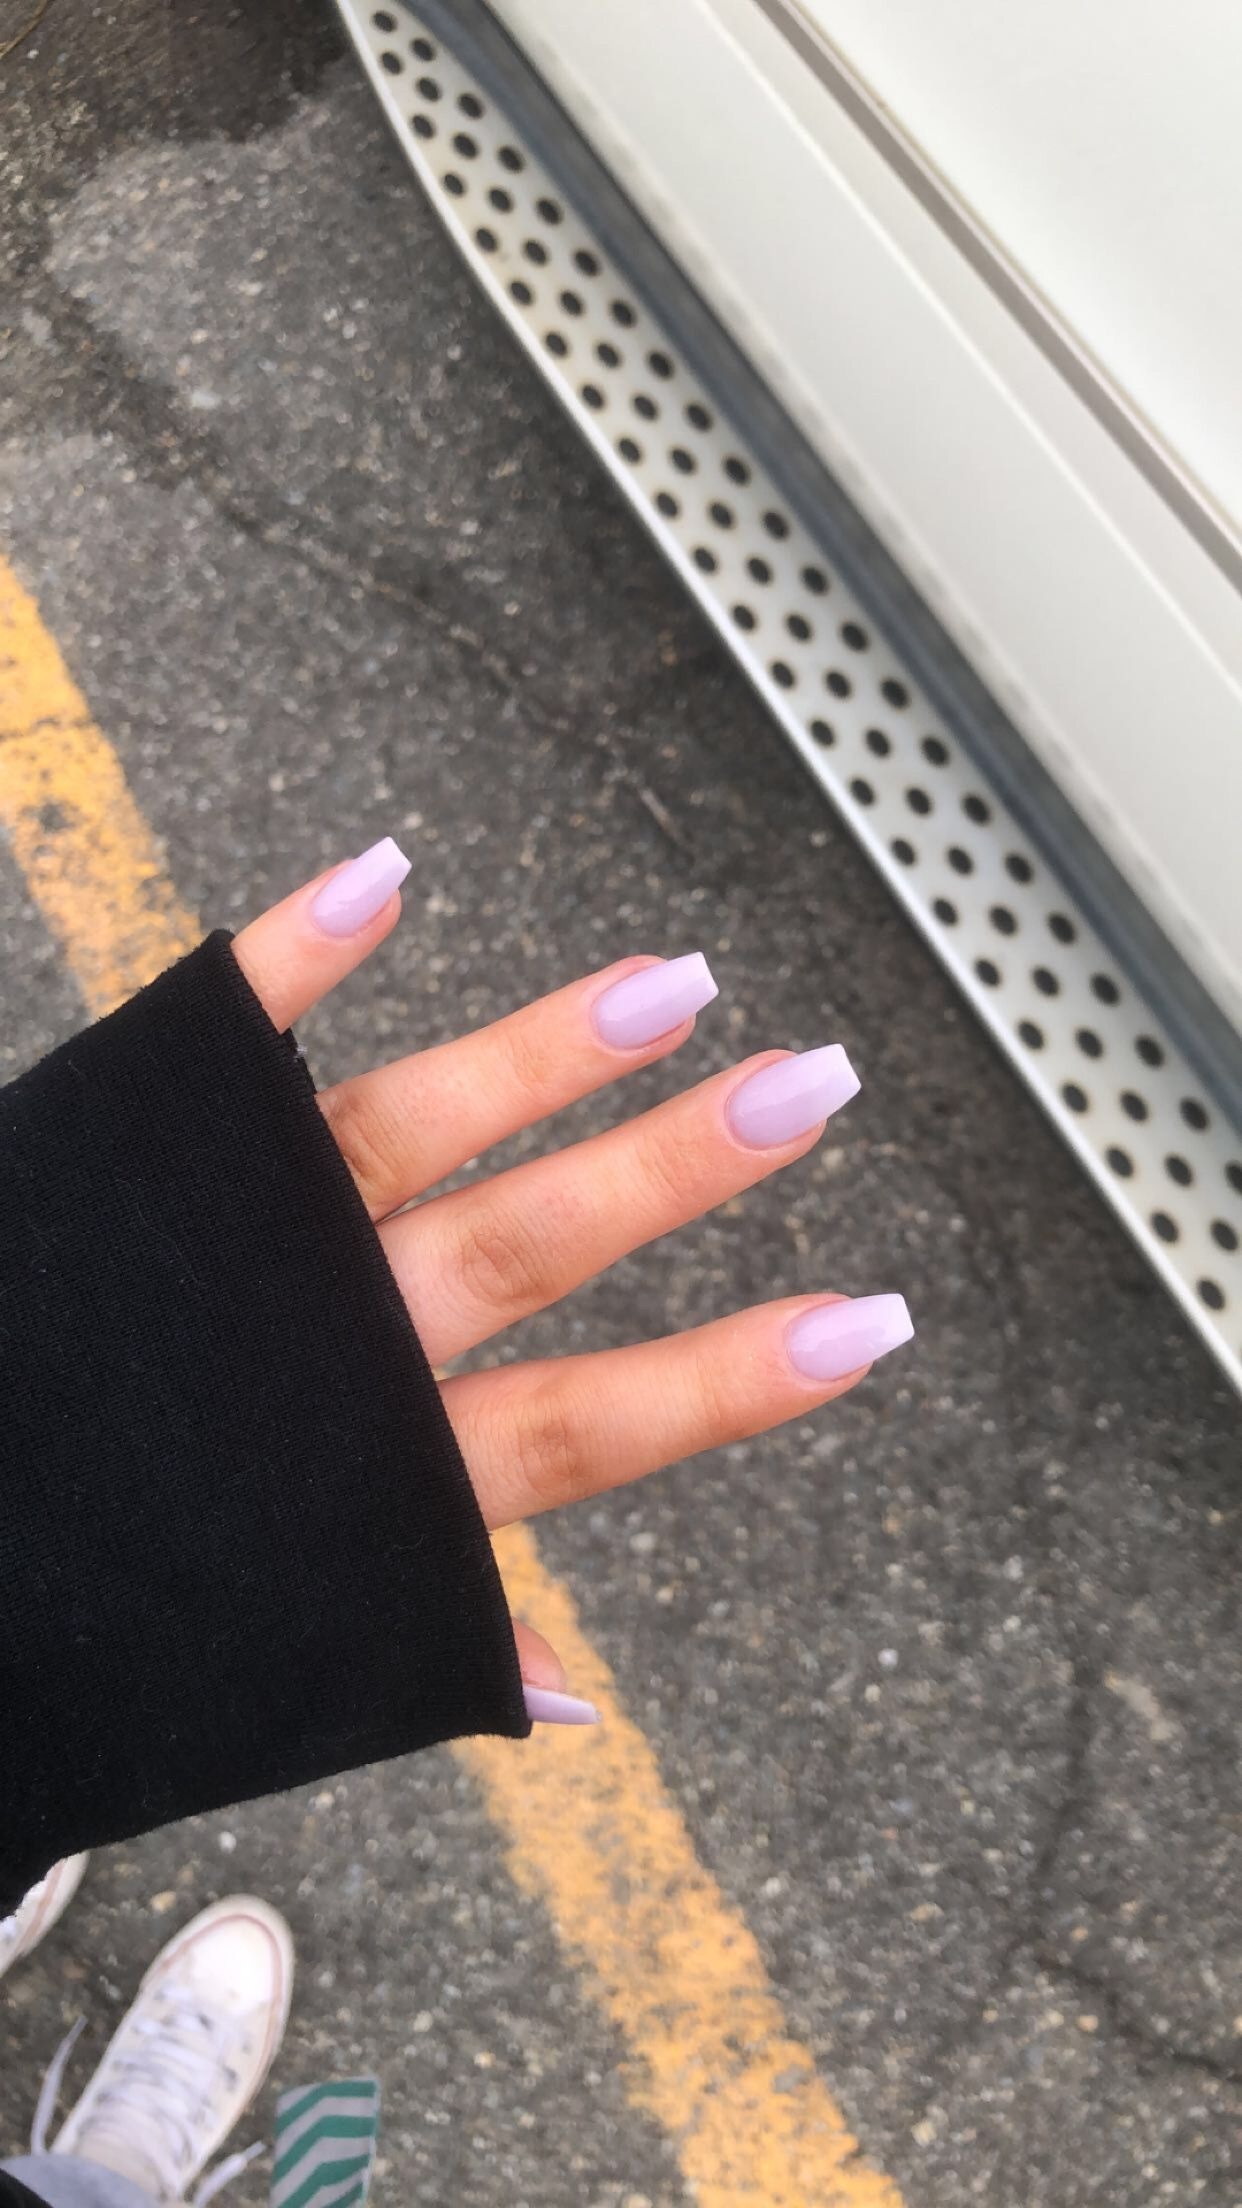 Purple Pastel Acrylic Coffin Nails Dip Manicure Aesthetic Acrylic Nails In 2020 With Images Acrylic Dip Nails Acrylic Nails Pastel Acrylic Nails